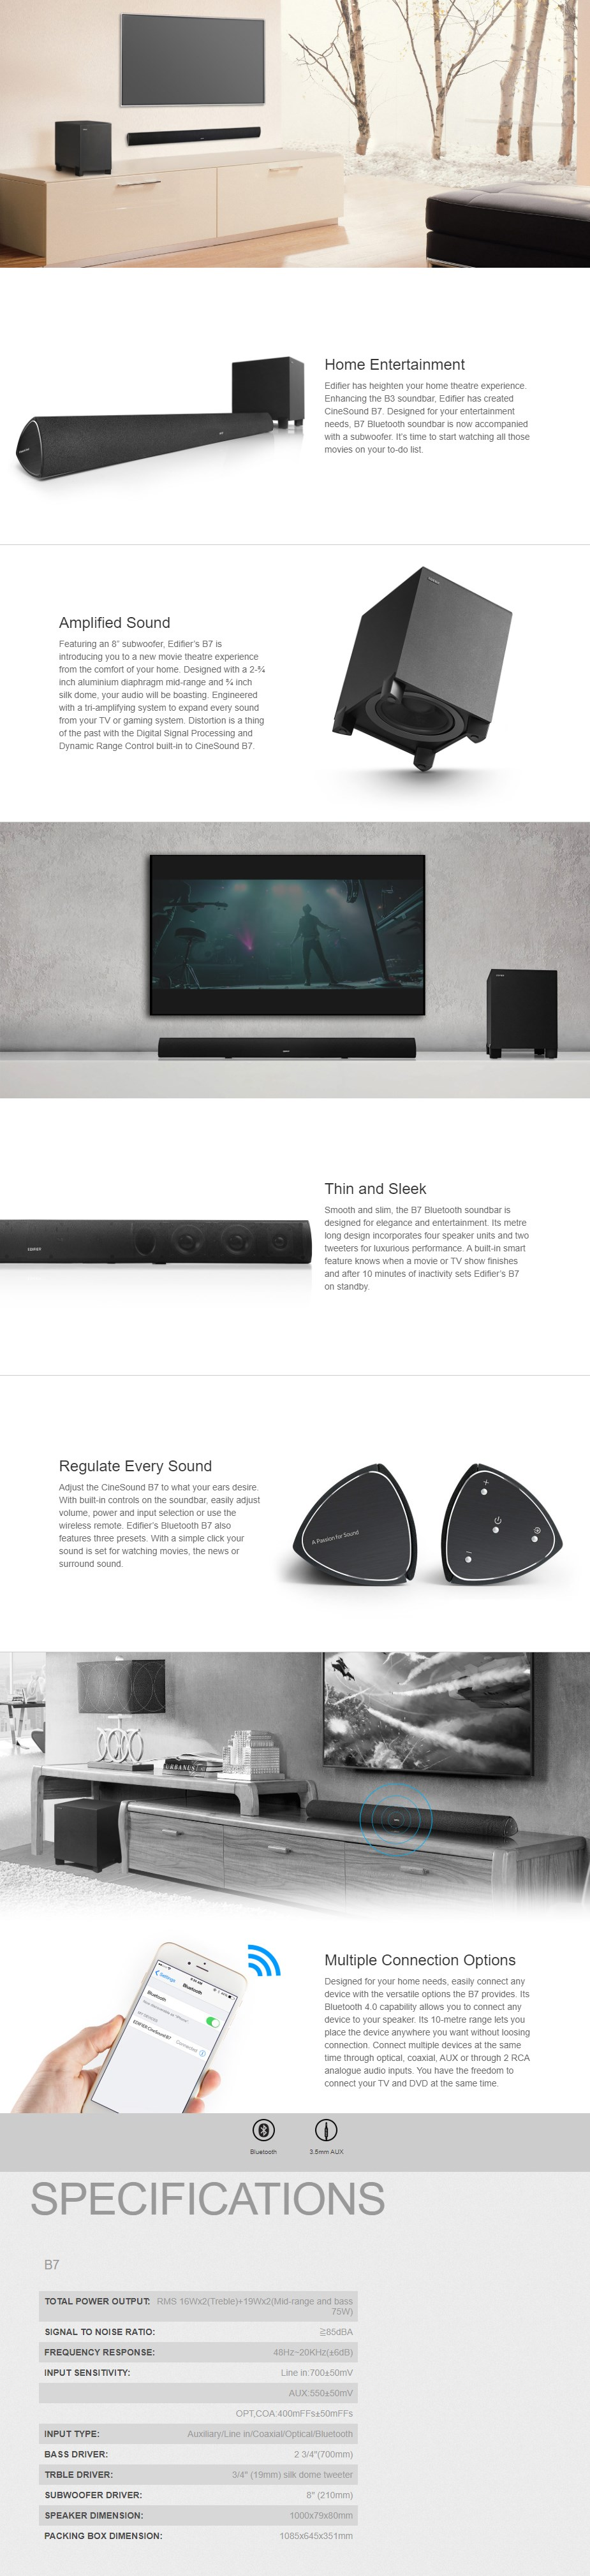 Edifier B7 CineSound Soundbar Speaker System with Wireless Bluetooth Subwoofer - Overview 1